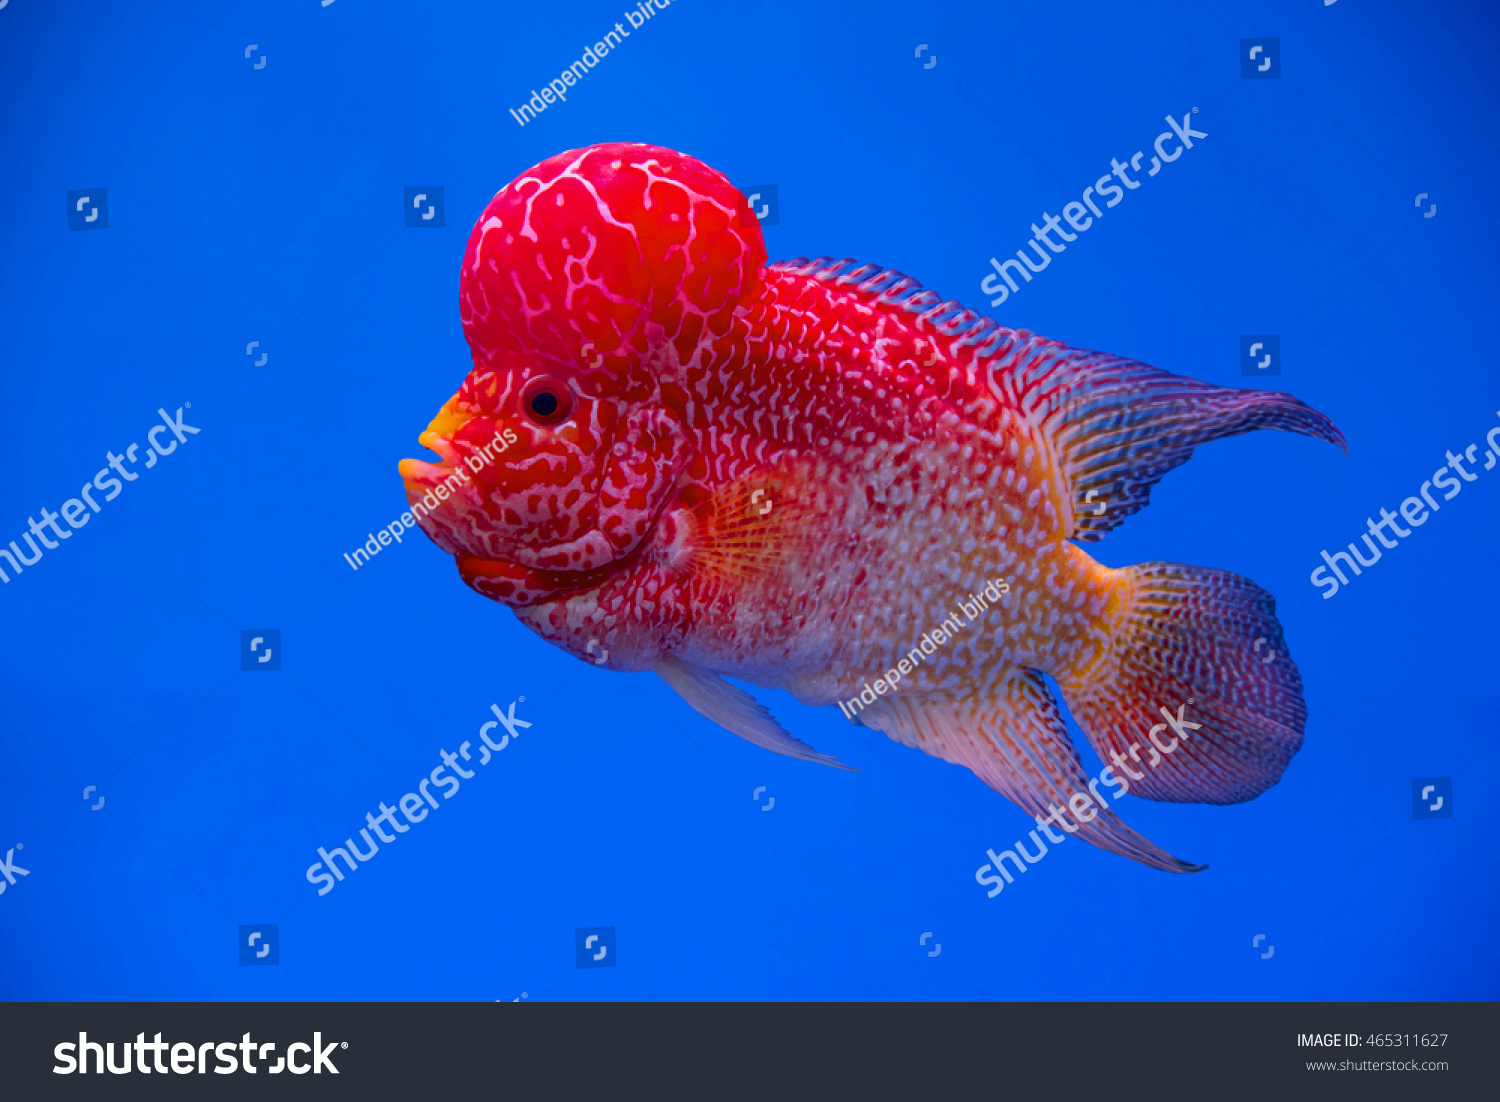 Flowerhorn Cichlid Fish Aquarium Colorful Fish Stock Photo (Royalty ...